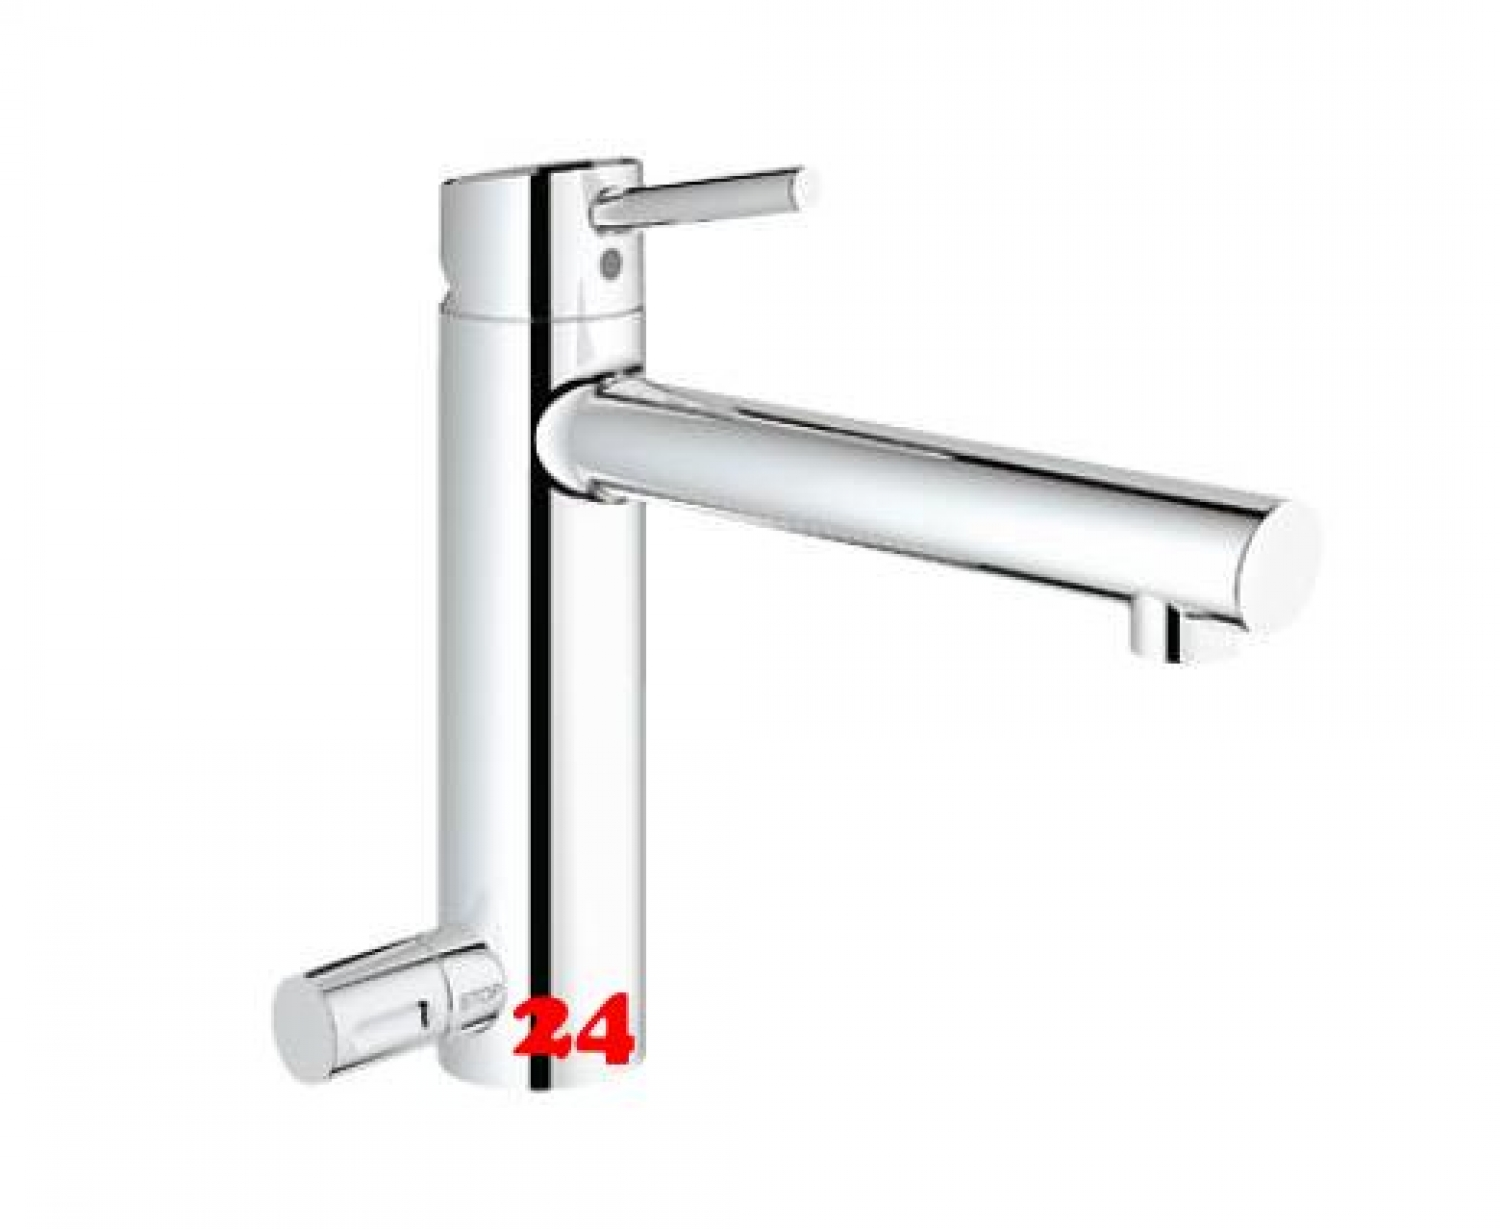 Modell: GROHE CONCETTO 31209001 Markenprodukt der Firma GROHE ...